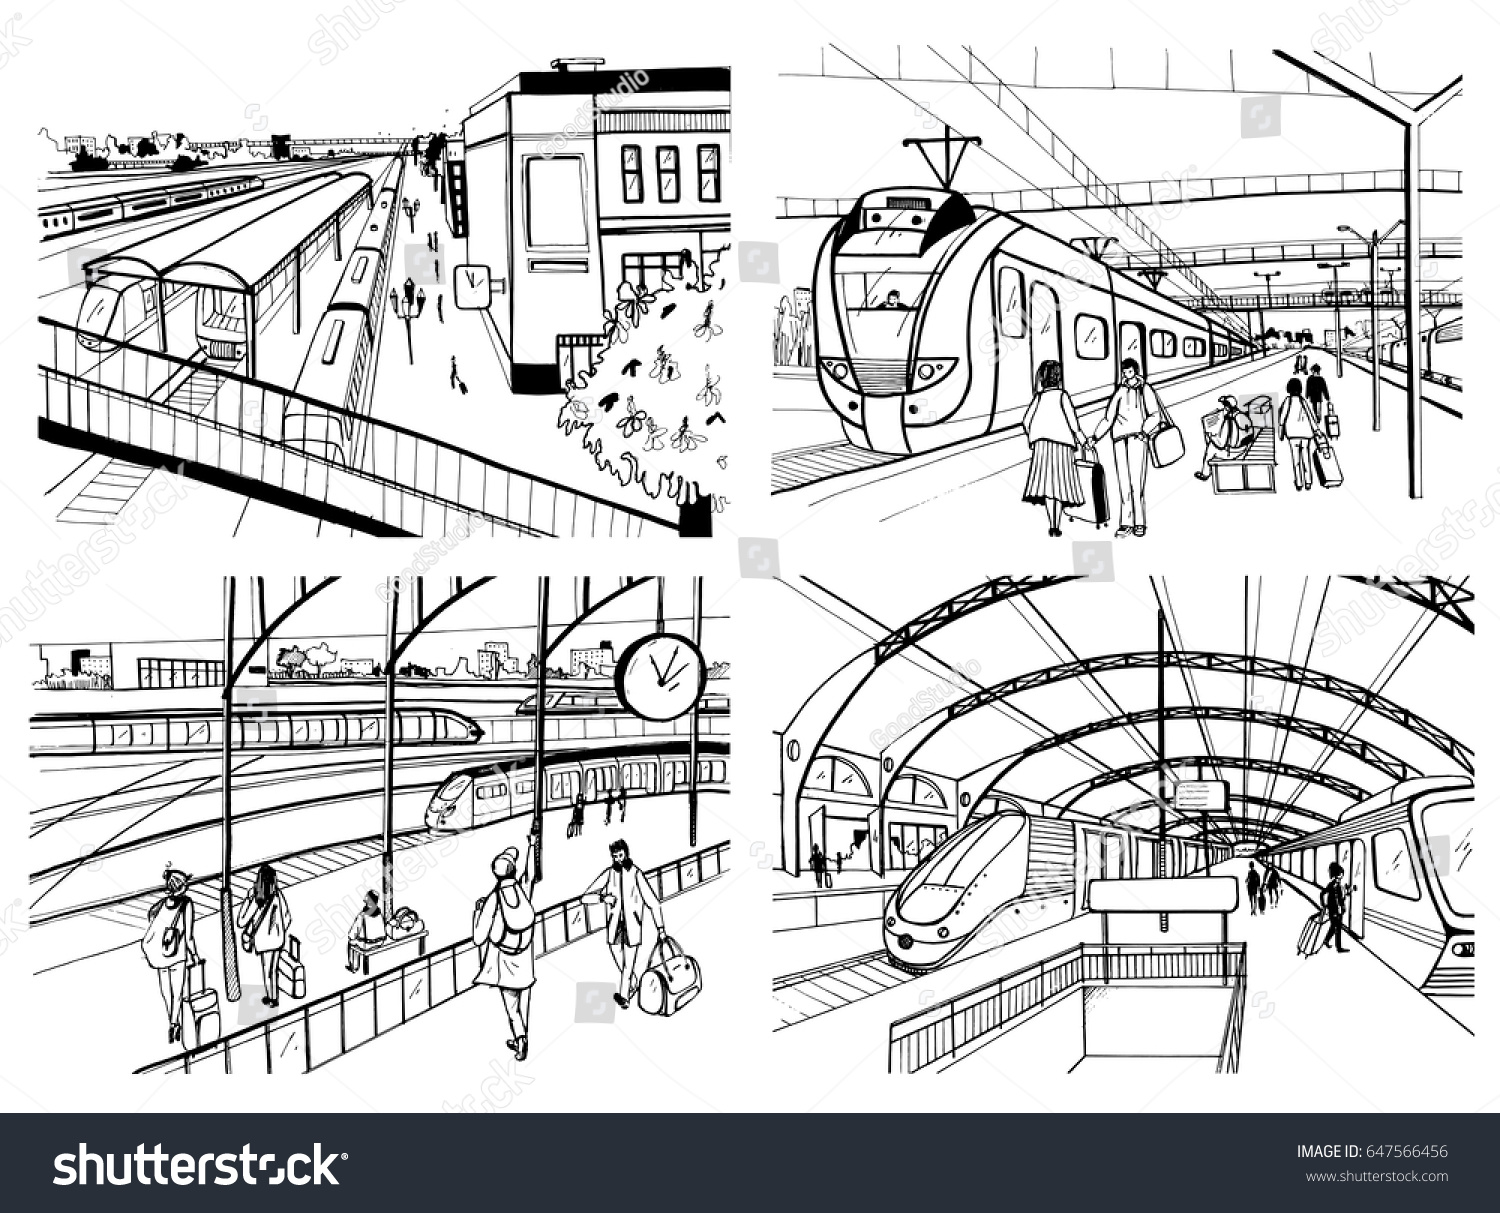 Set of sketches with railway station. Passengers on platform, waiting, arriving and departing train. Hand drawn black and white vector illustration.